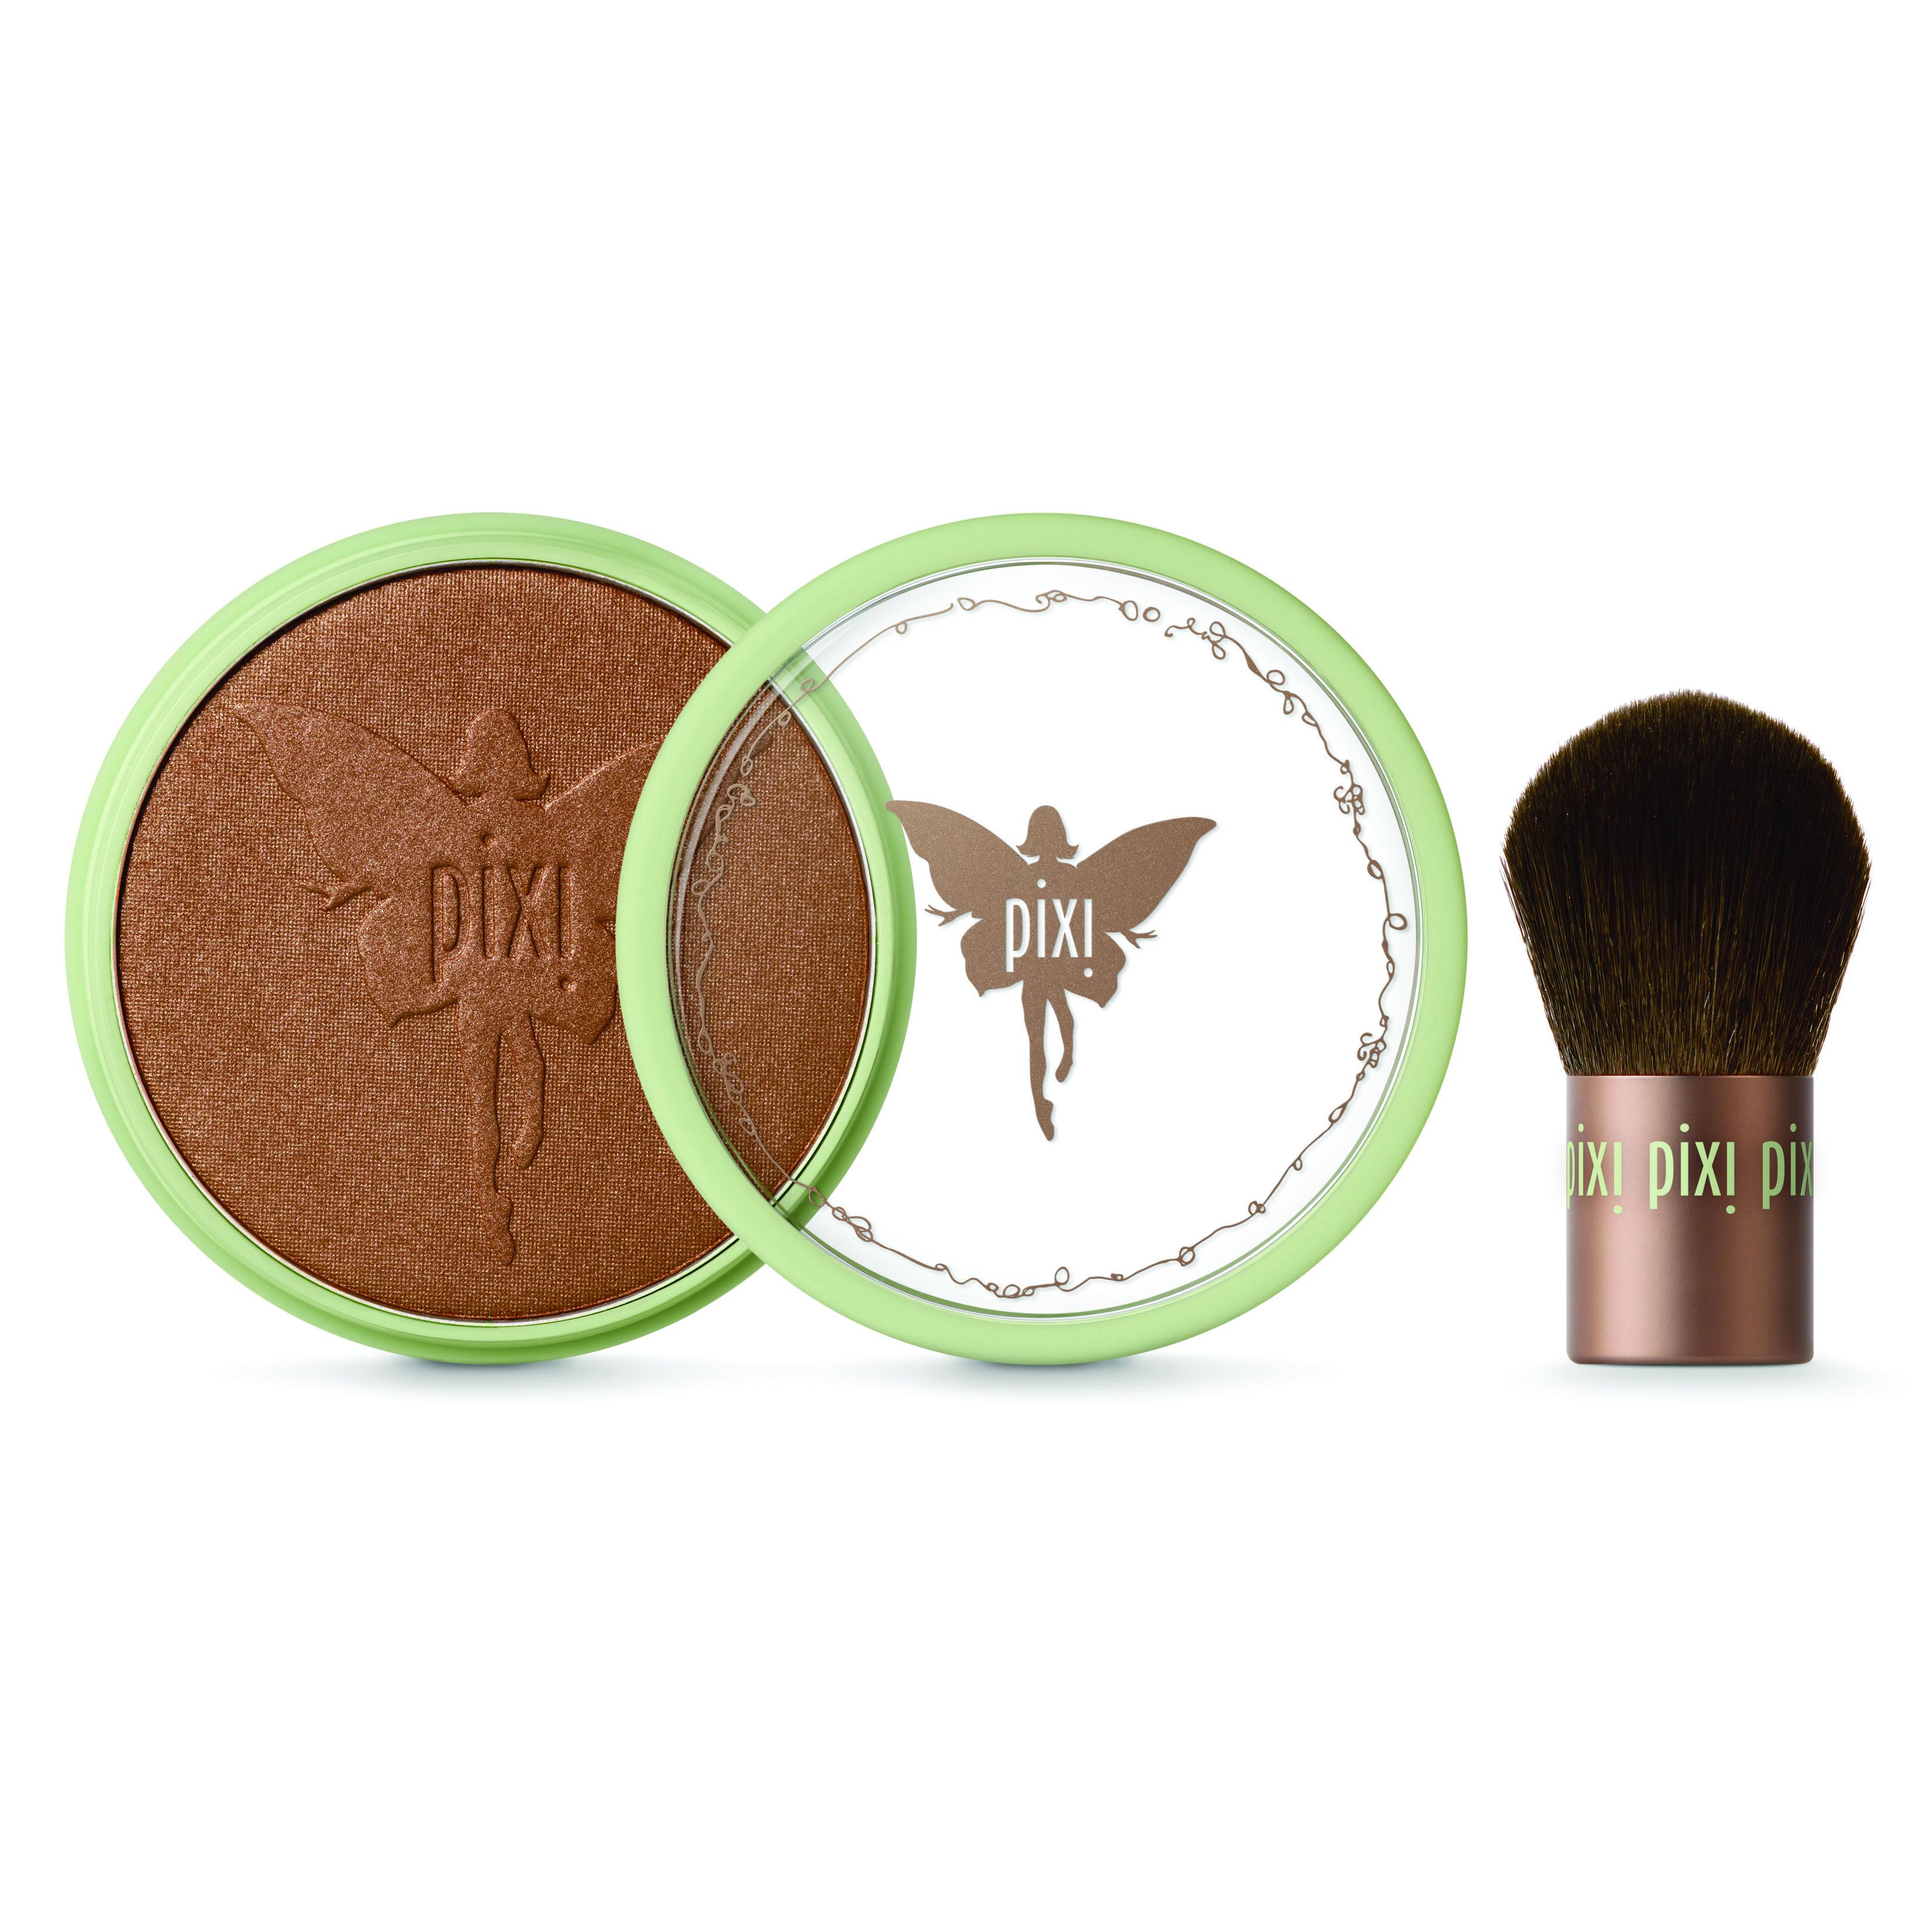 Beauty Bronzer + Kabuki, $21. This deluxe bronzing powder gives your complexion the warmth and luminosity of naturally sun kissed skin and comes in three long-wearing shades.